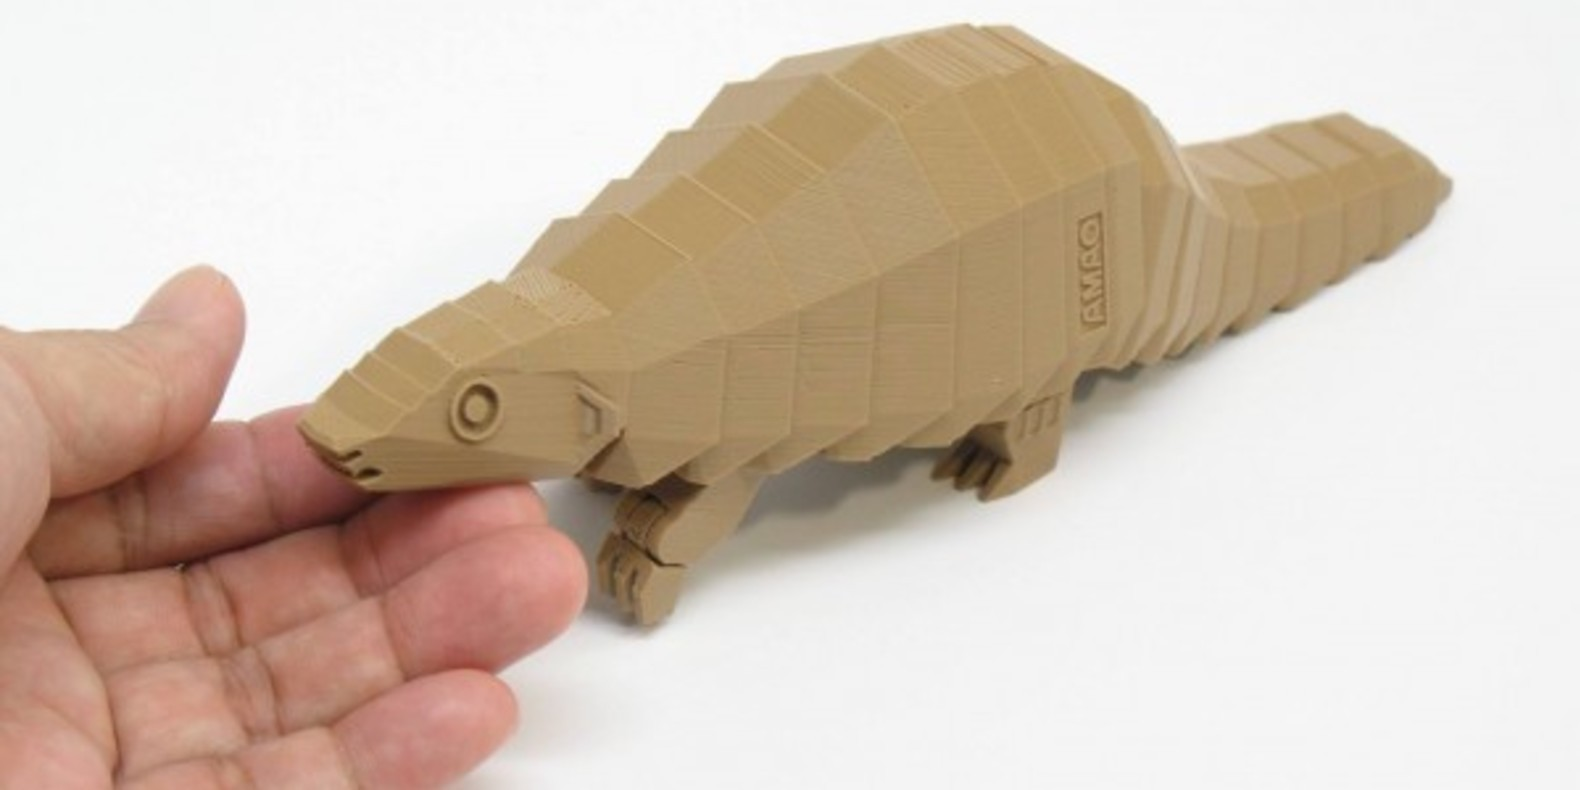 pangolin-3D-printing-cults-save-the-pangolins-2.jpg